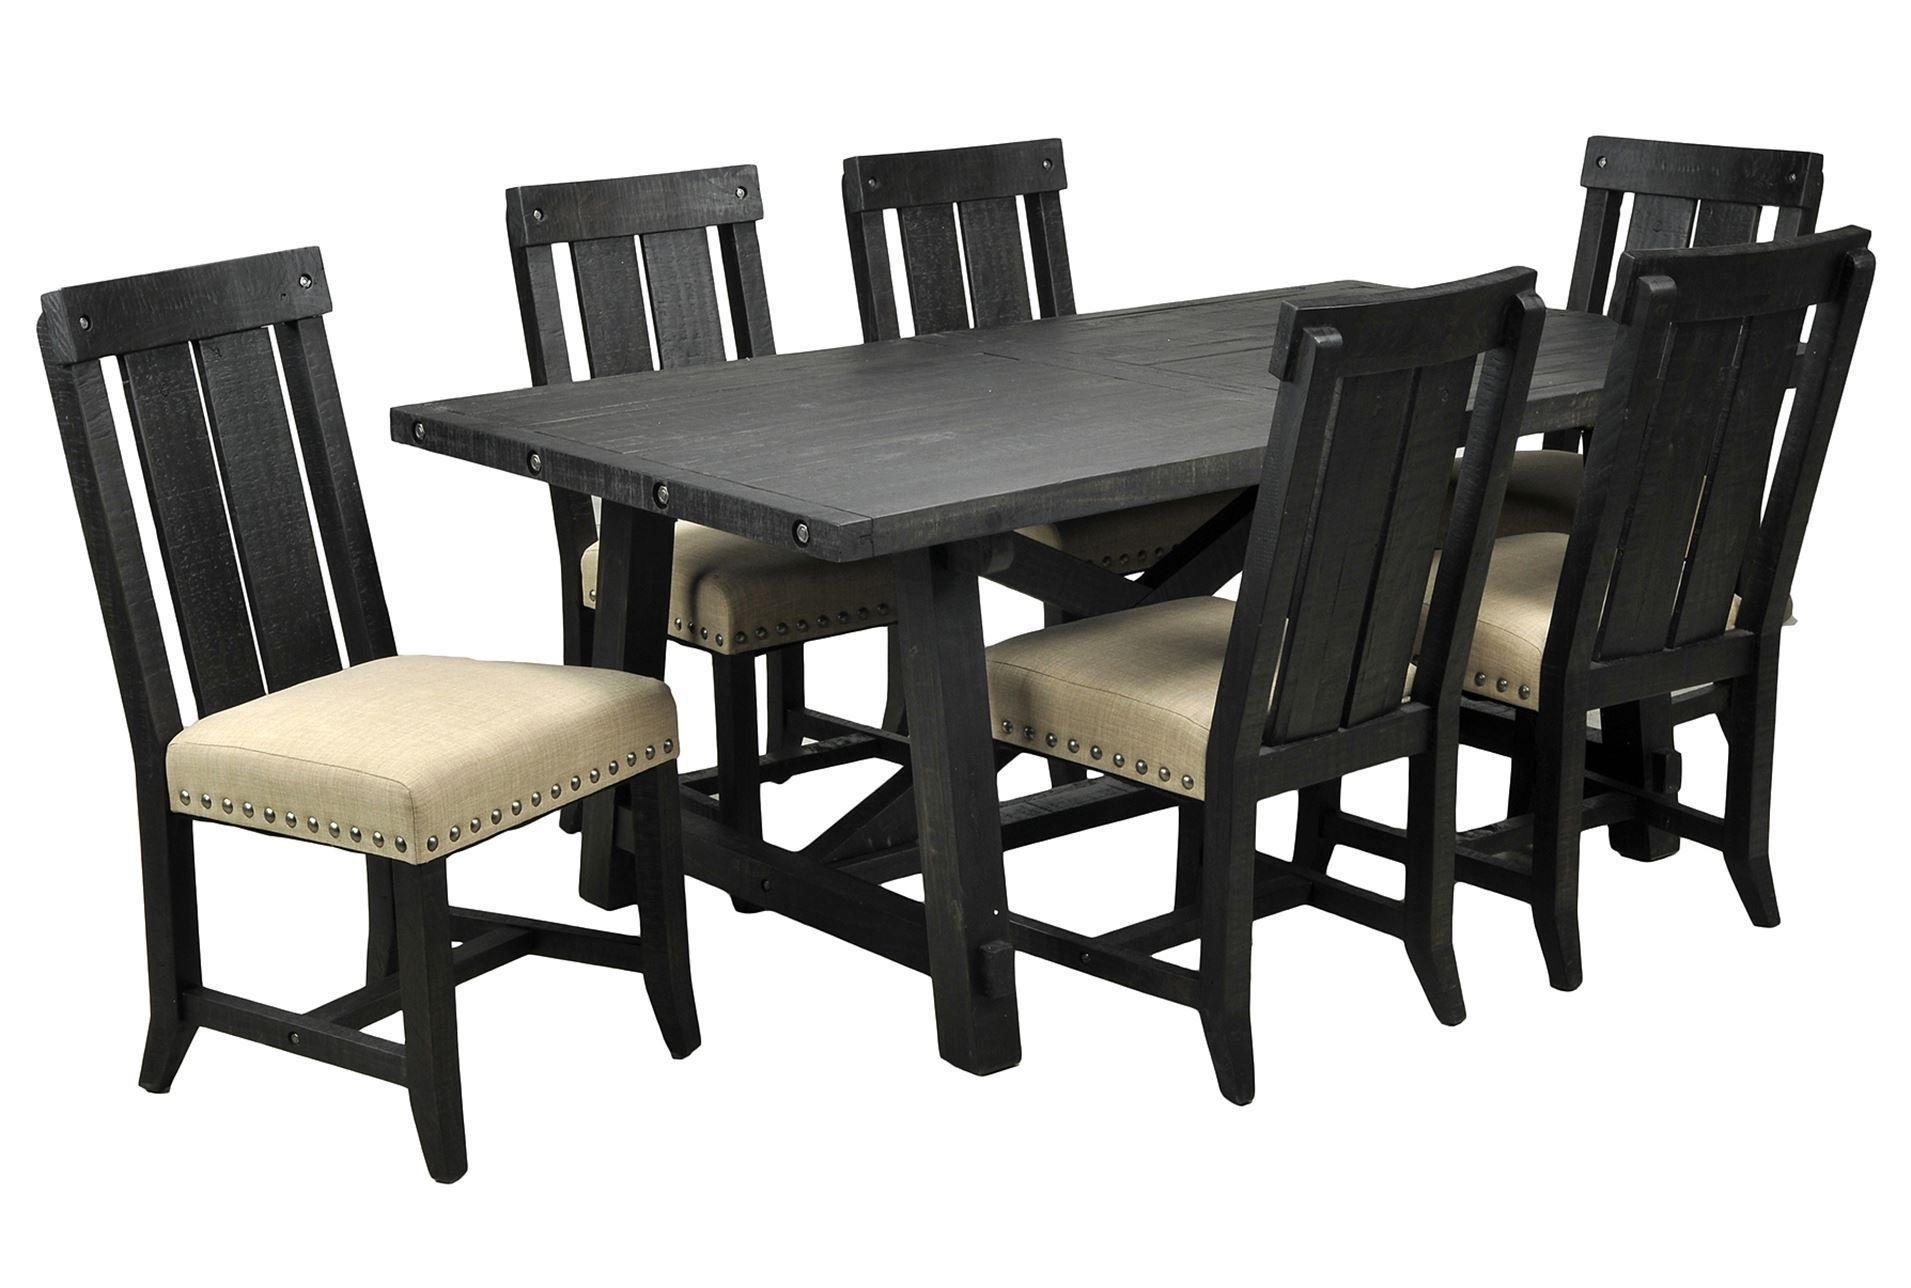 Jaxon 7 Piece Rectangle Dining Set W/wood Chairs | Sespe 3 General With Most Up To Date Jaxon 6 Piece Rectangle Dining Sets With Bench & Wood Chairs (View 4 of 20)